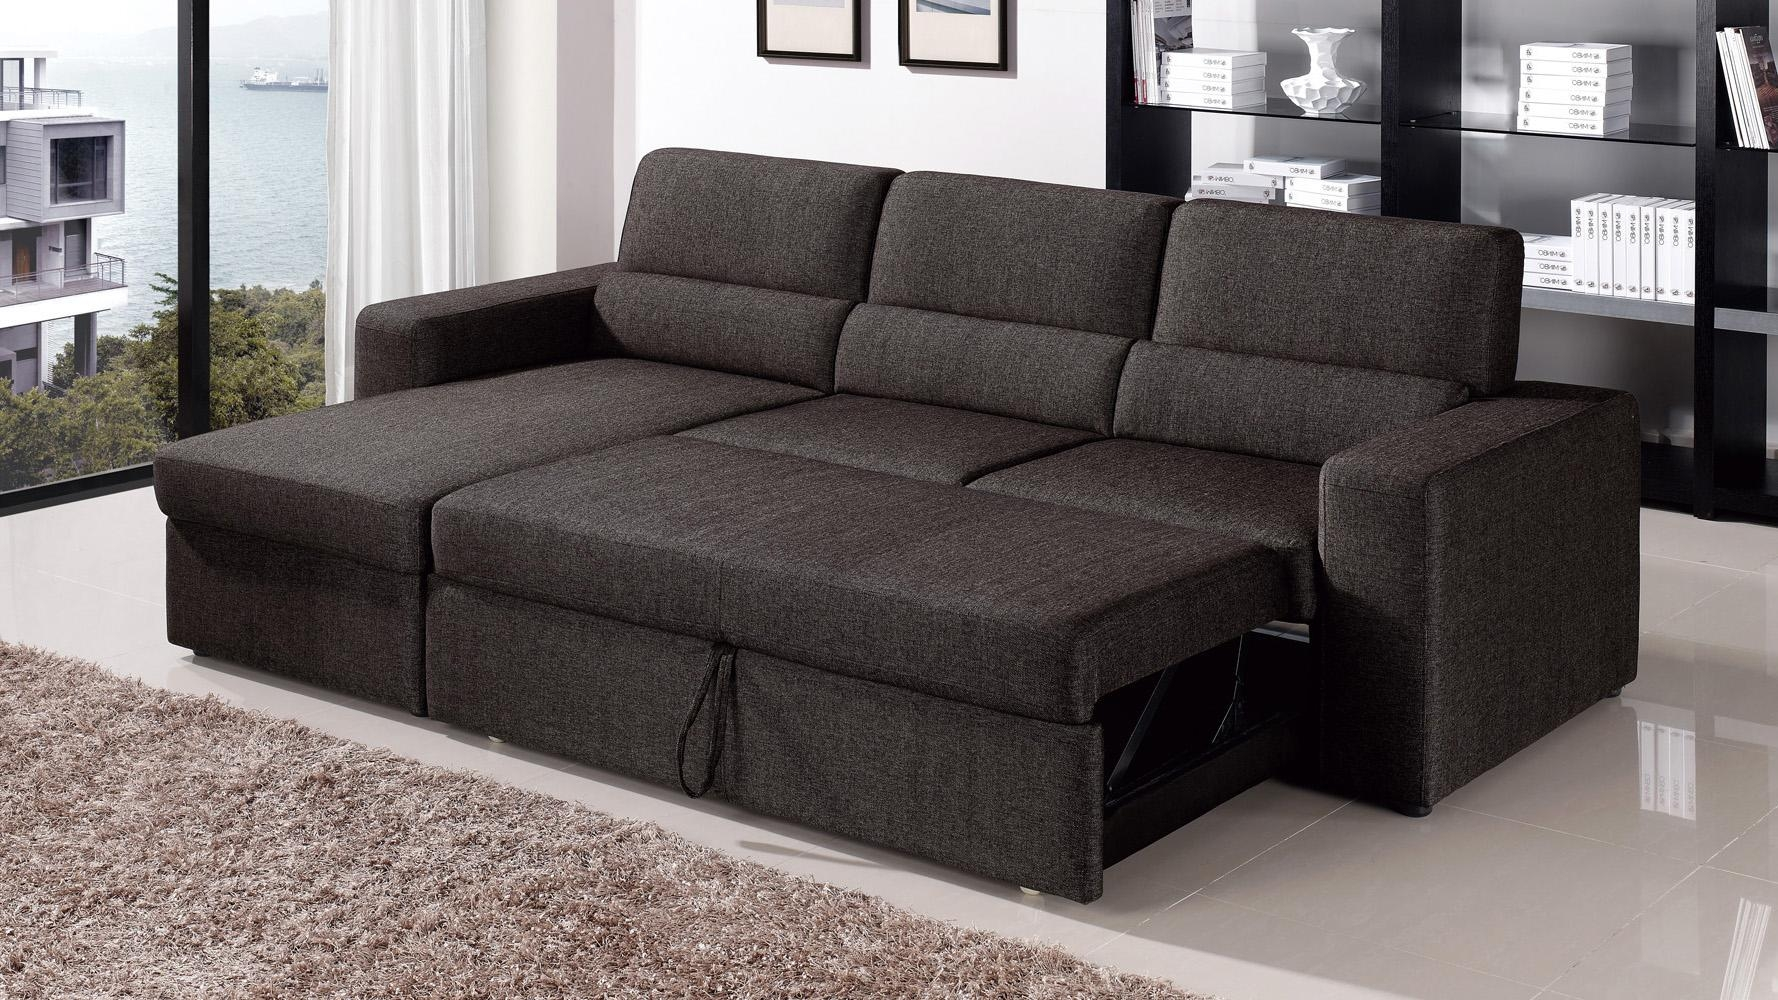 Black/brown Clubber Sleeper Sectional Sofa | Zuri Furniture Pertaining To Sectional Sleeper Sofas With Chaise (View 3 of 20)